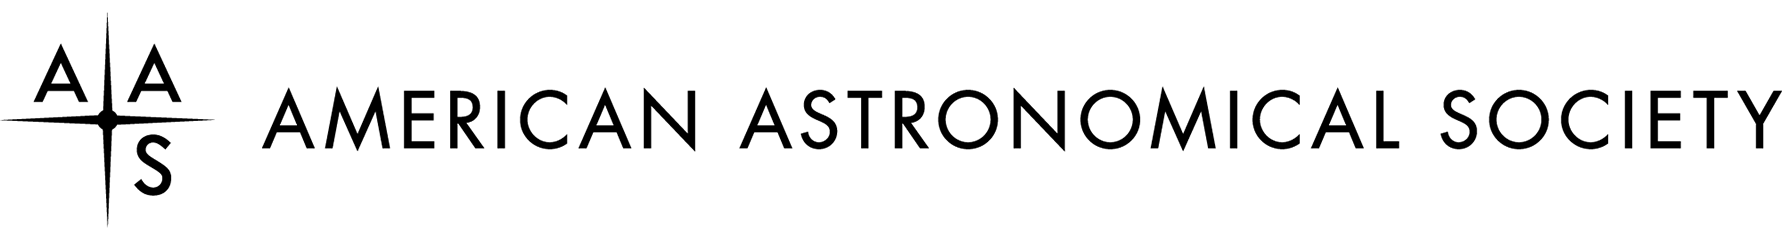 Logo - Text in black lettering to the right of a black compass-star shape with the letters AAS around it.